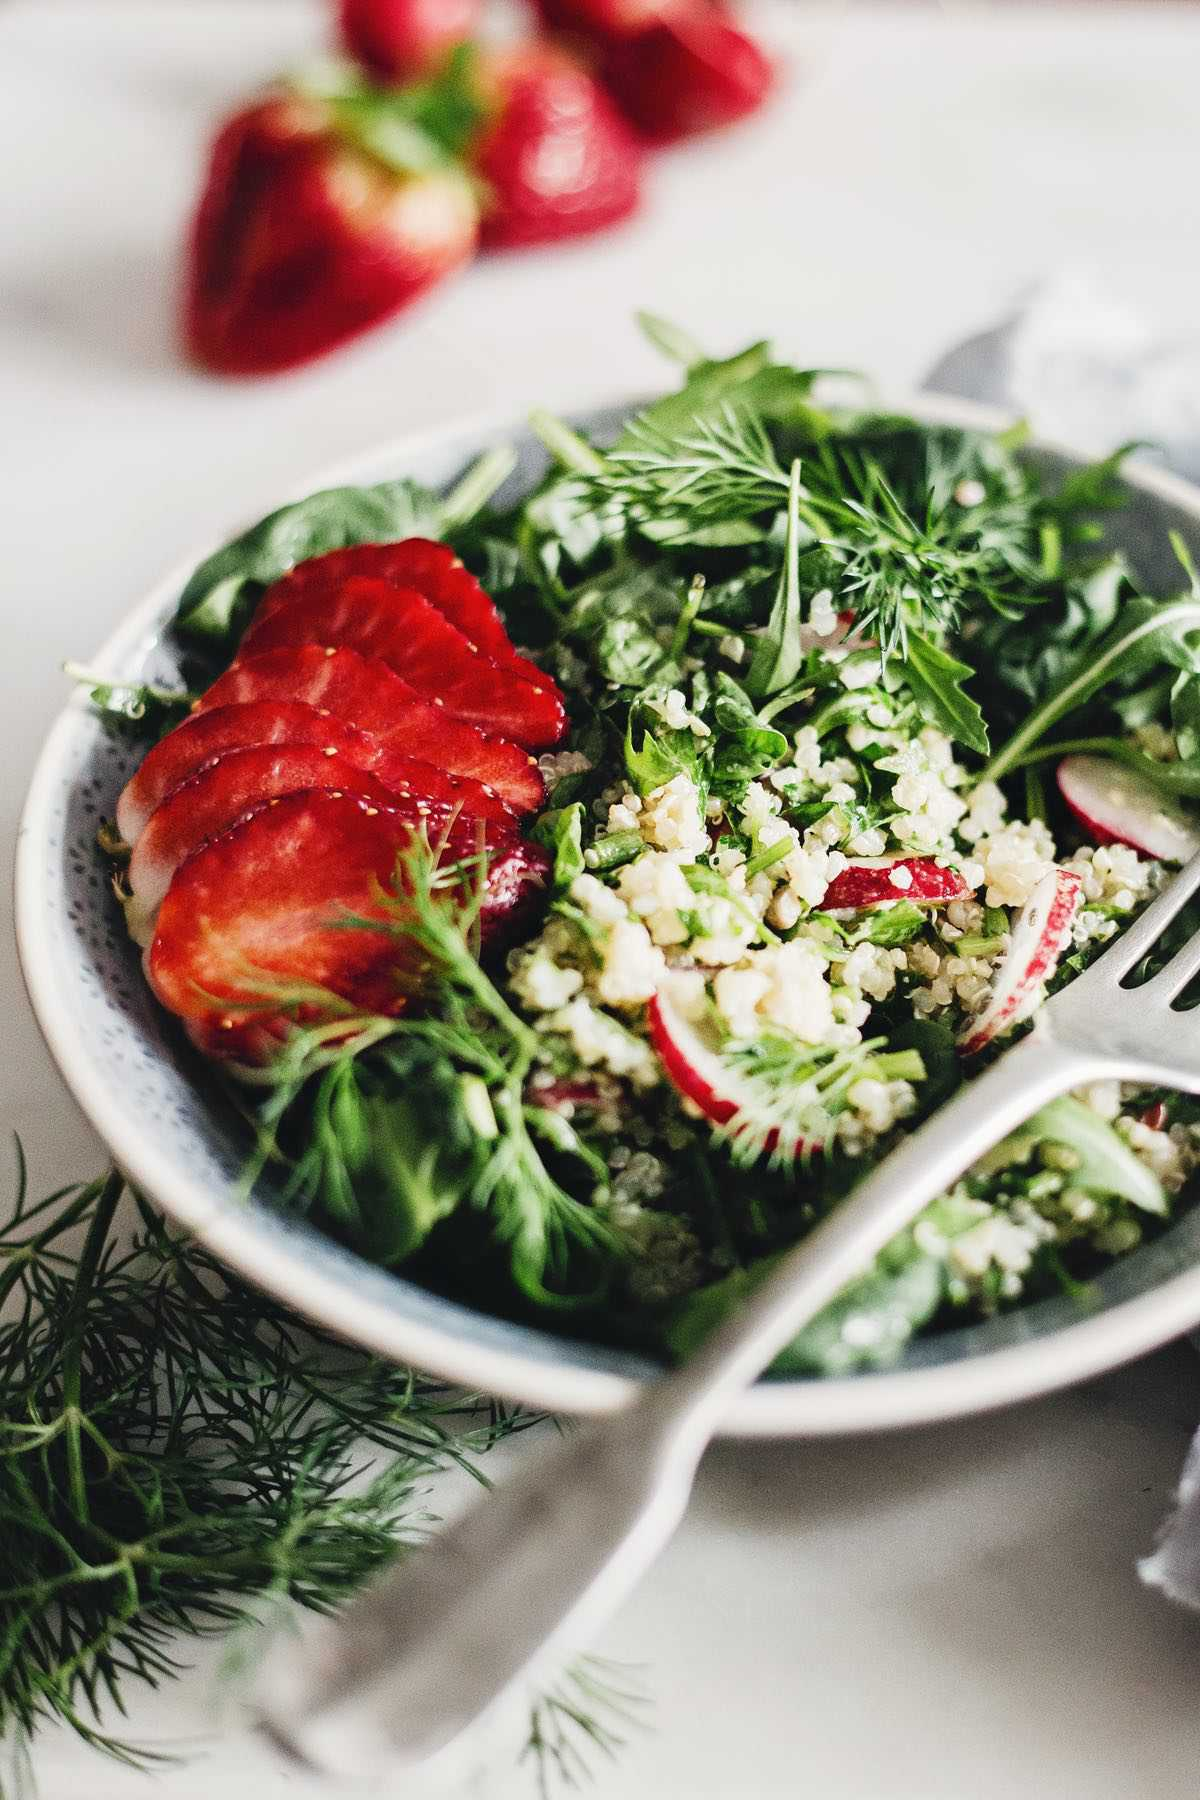 Avocado, Strawberry and Cucumber Quinoa Salad